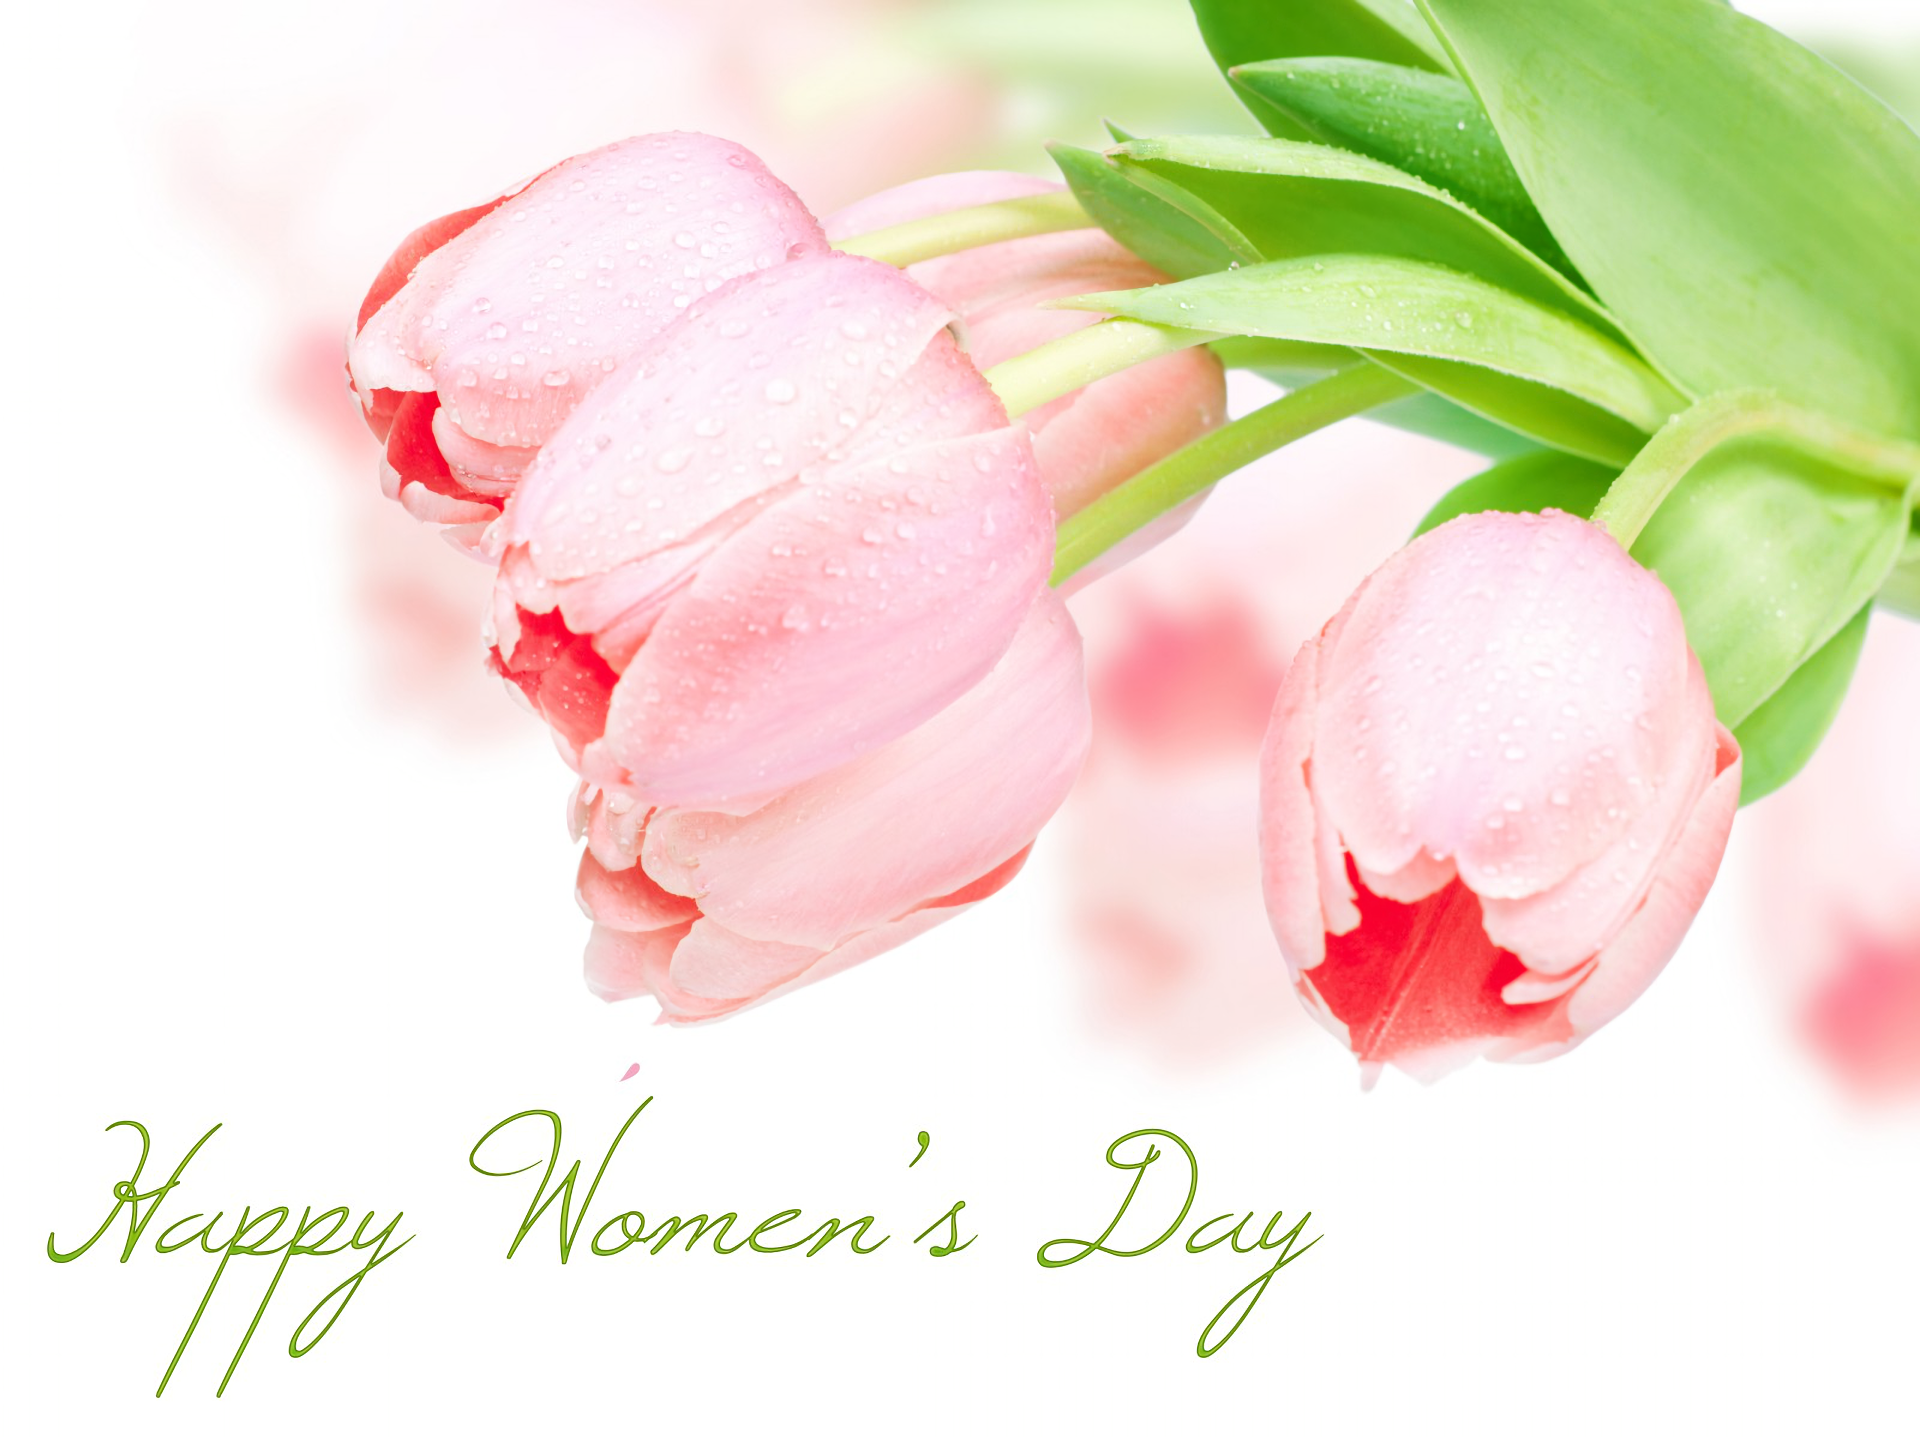 Feestdag - Women's Day  Tulp Bloem Statement Wallpaper